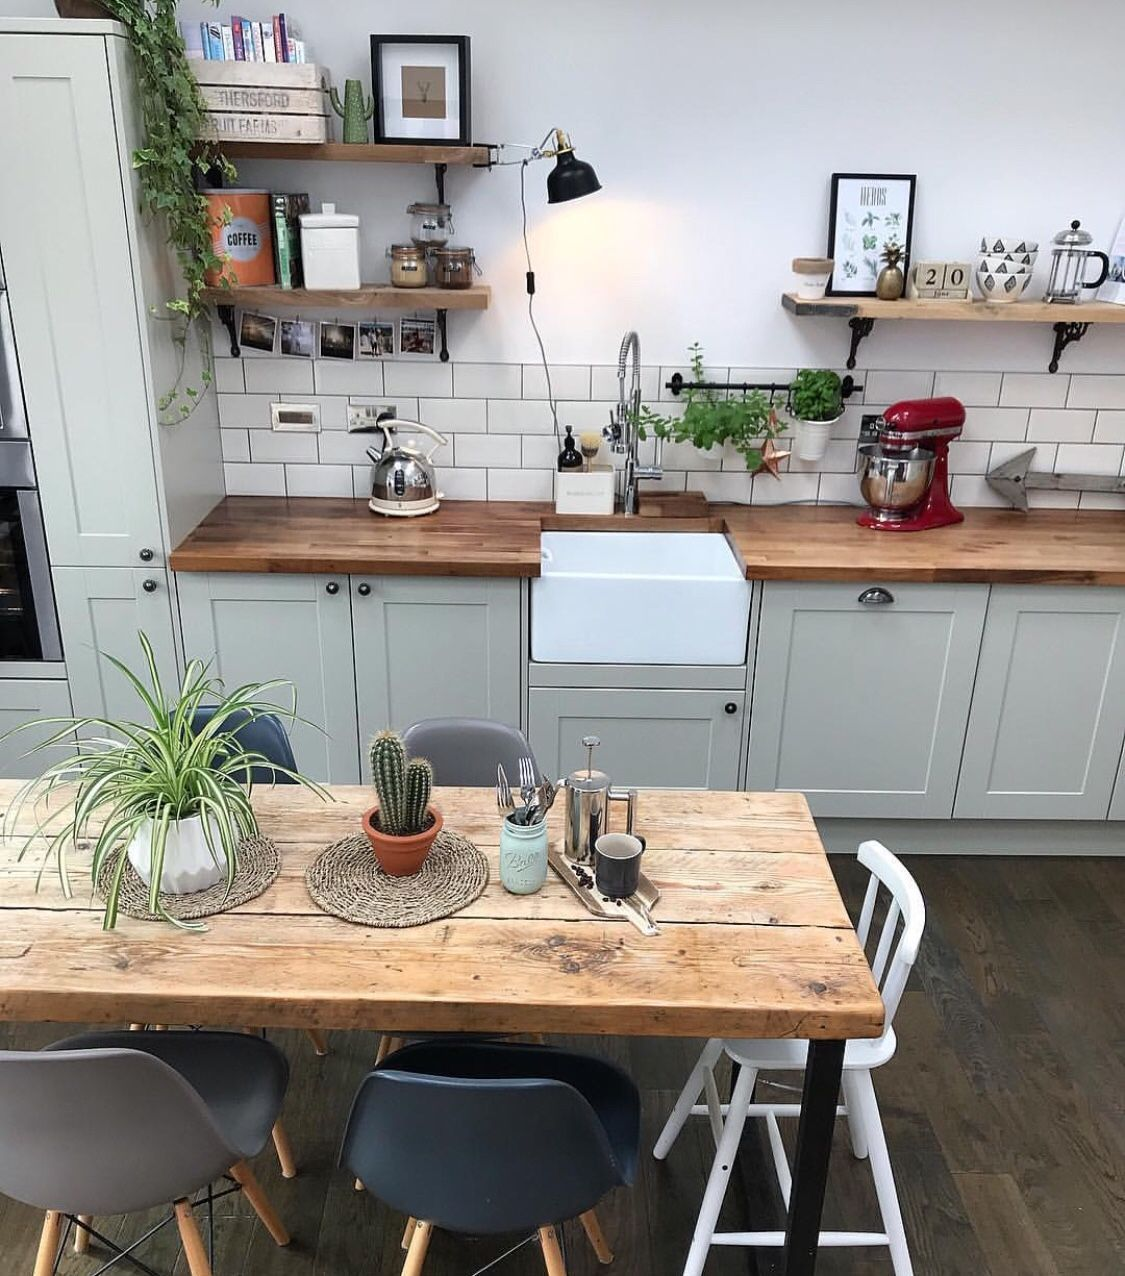 Elegant fireplace makeover for farmhouse home decor new blog post up kitchendecorretro also simple kitchen decoration in small house open shelves rh pinterest